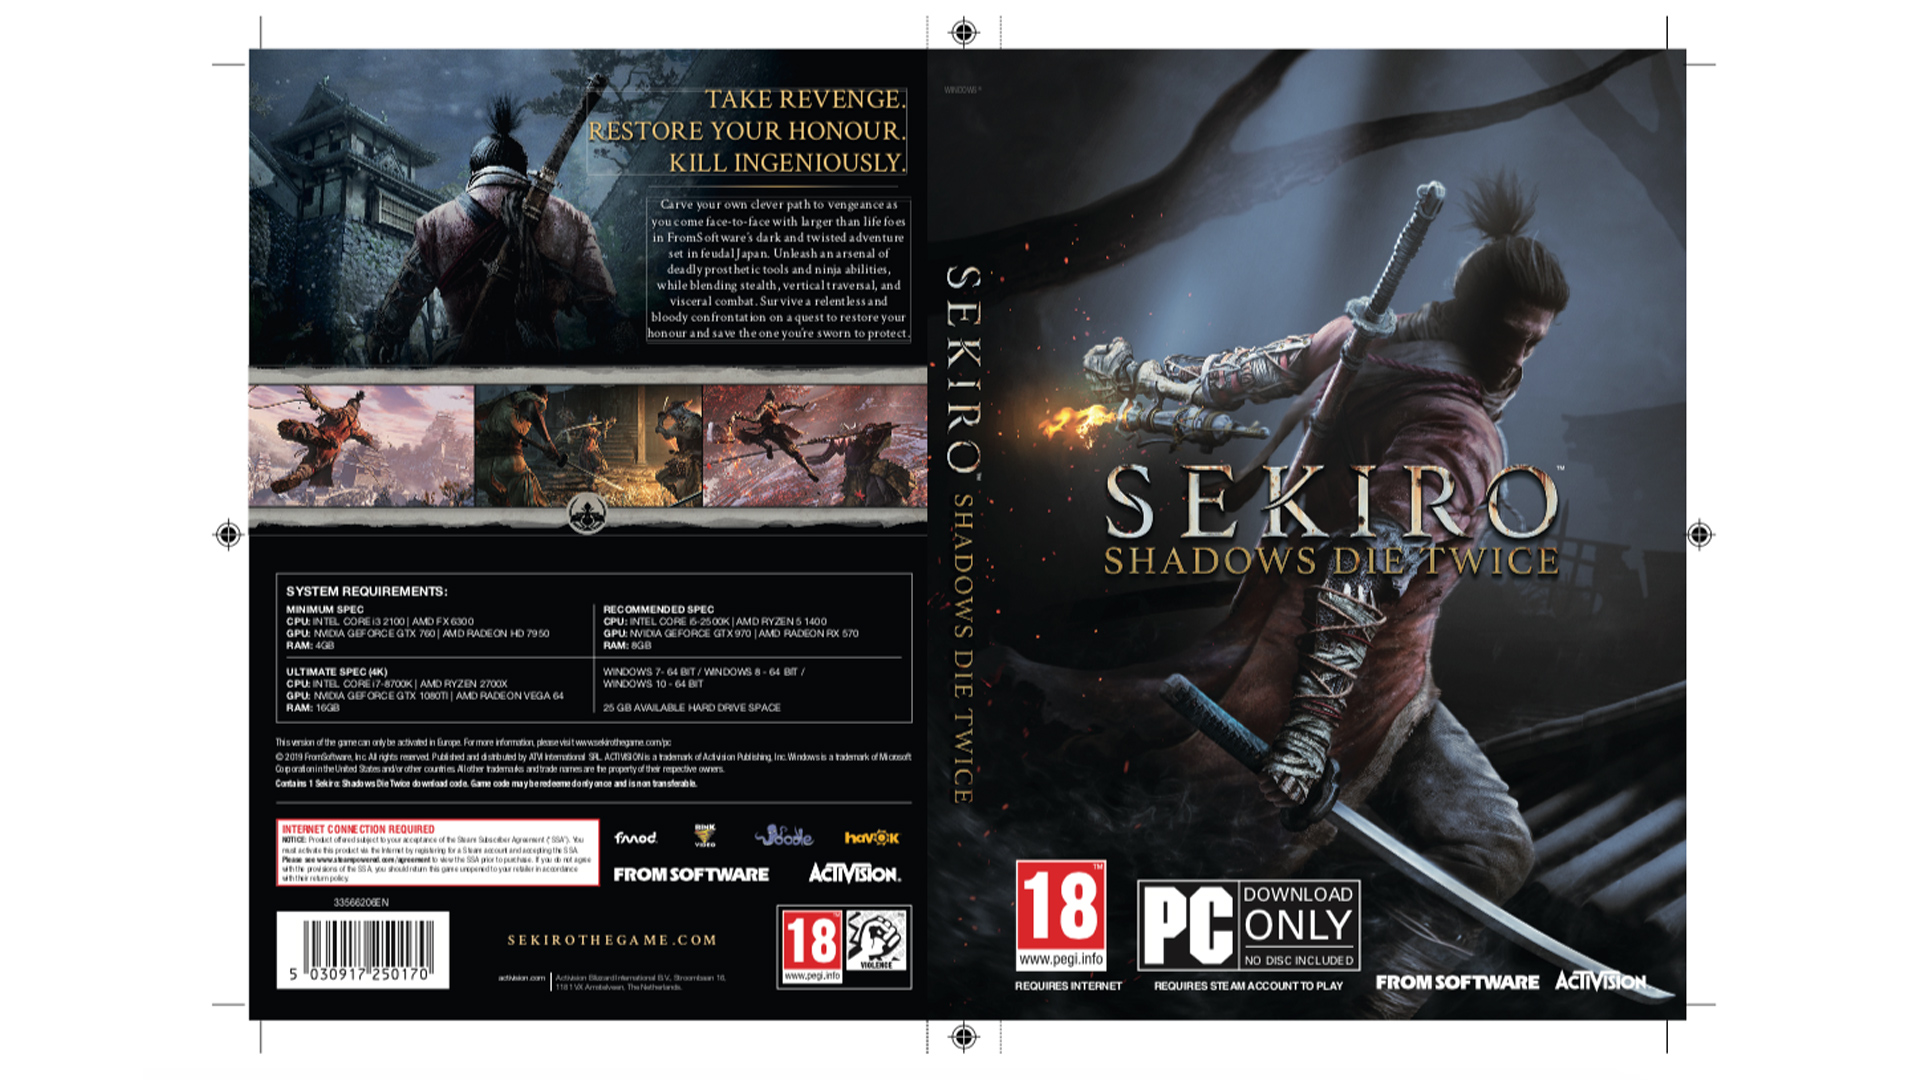 Sekiro-Artwork-Reprographics_inlay